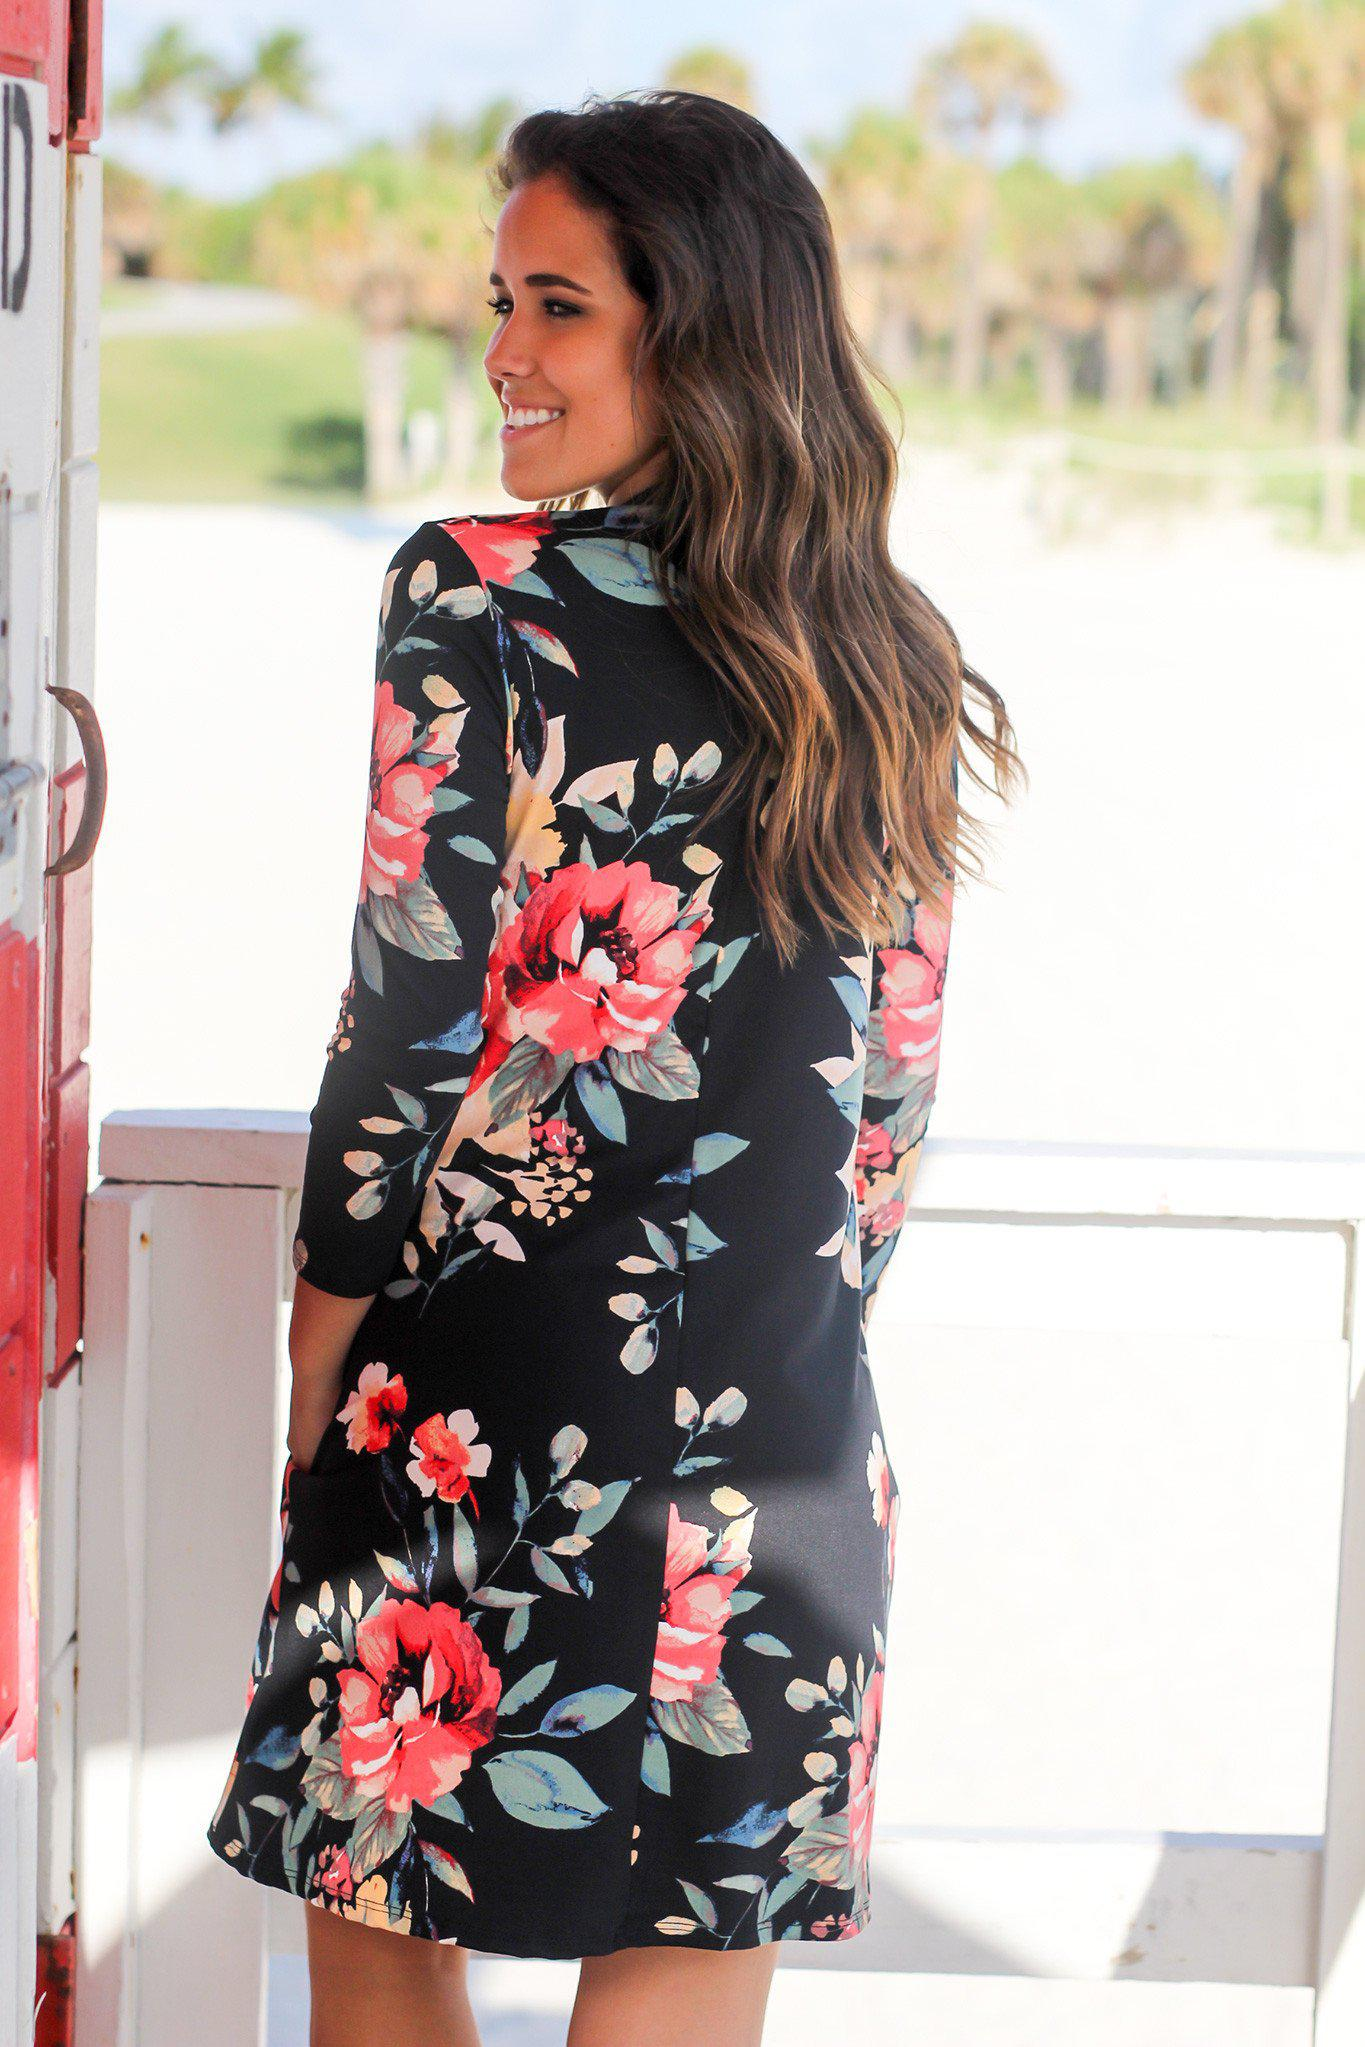 Black Floral Mock Neck Short Dress